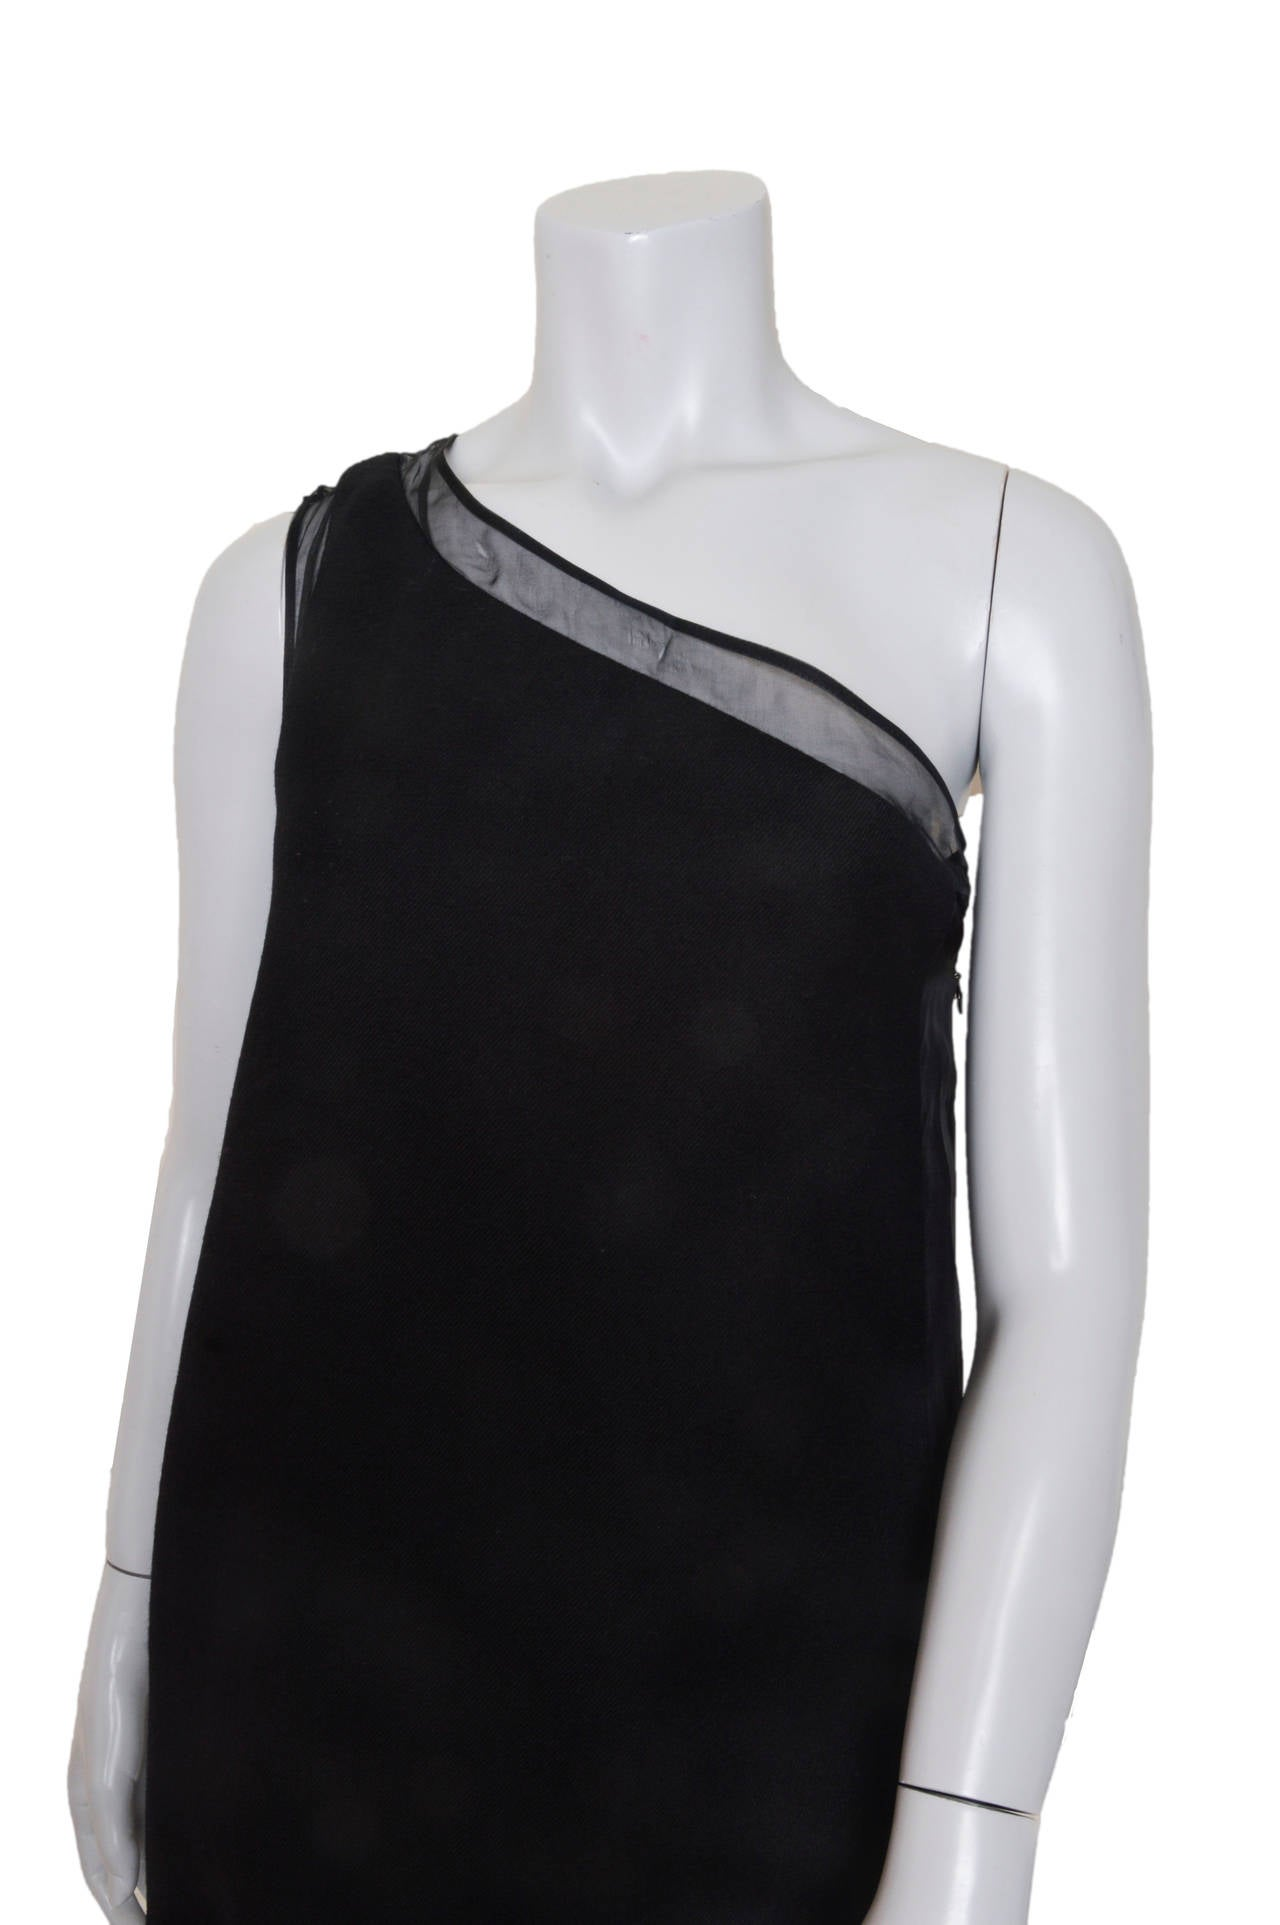 Stella McCartney Black One Shoulder Dress In New Condition For Sale In San Francisco, CA